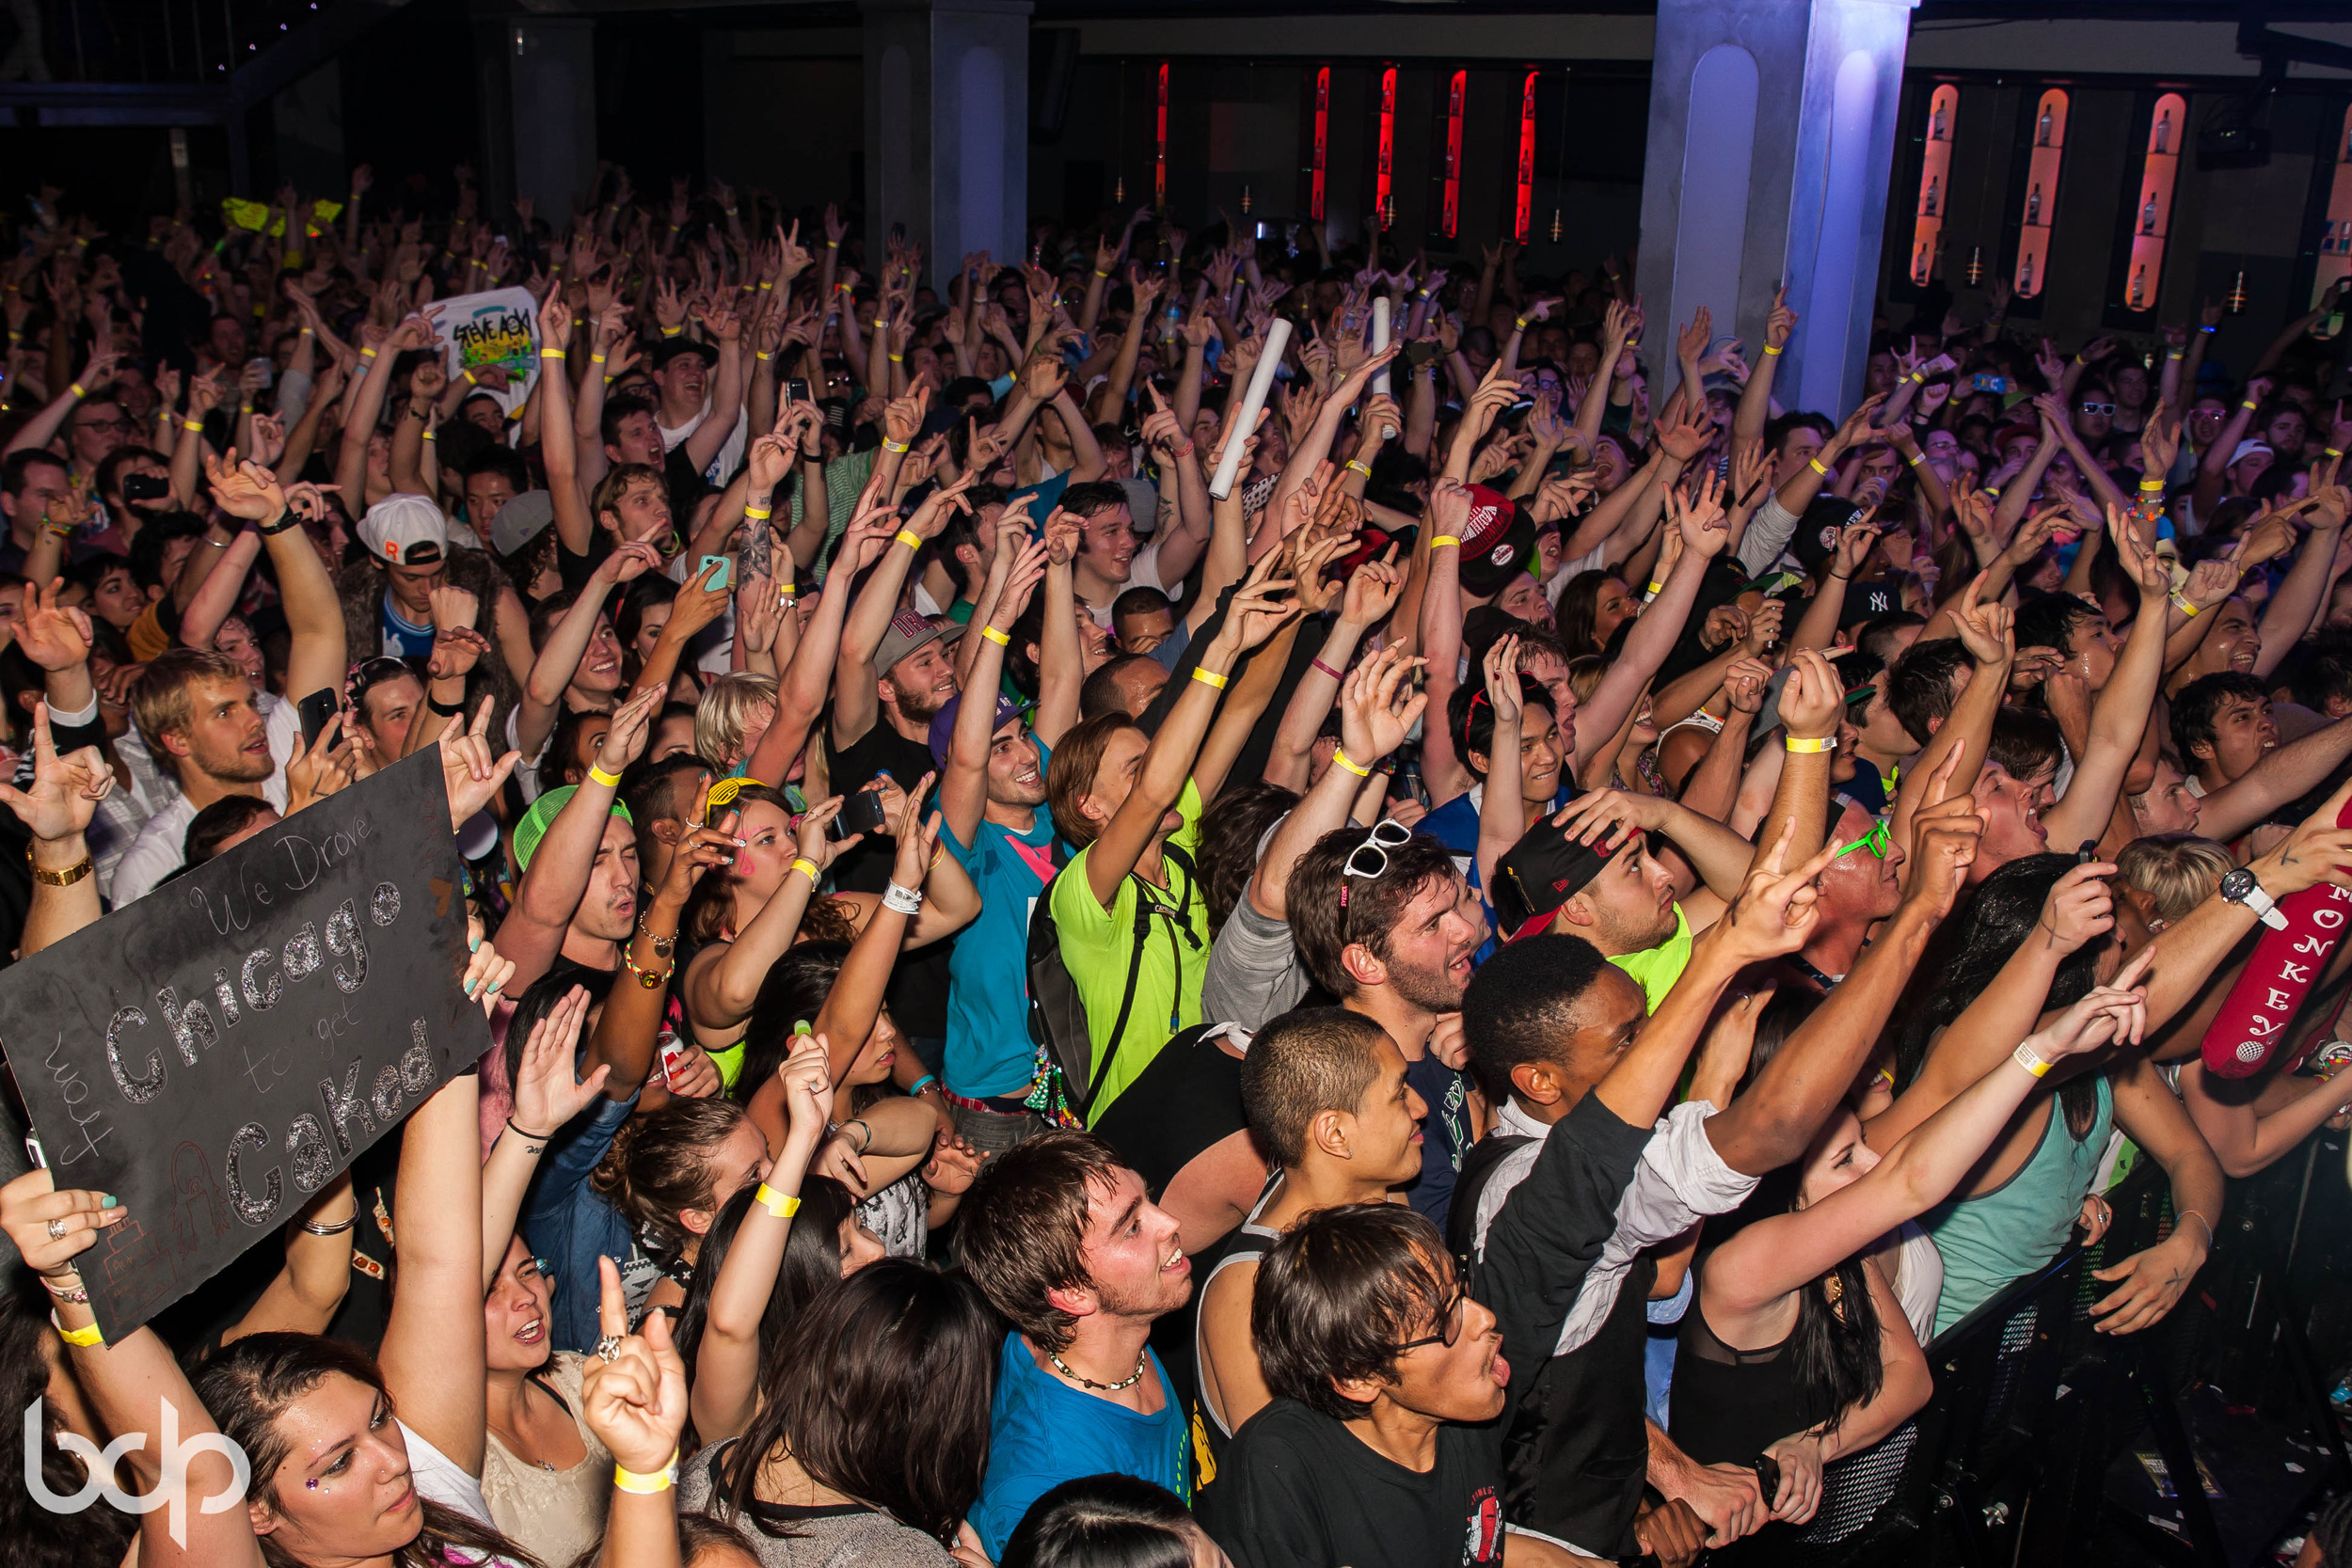 Aokify America Tour at Epic at Epic 110913 BDP-4.jpg